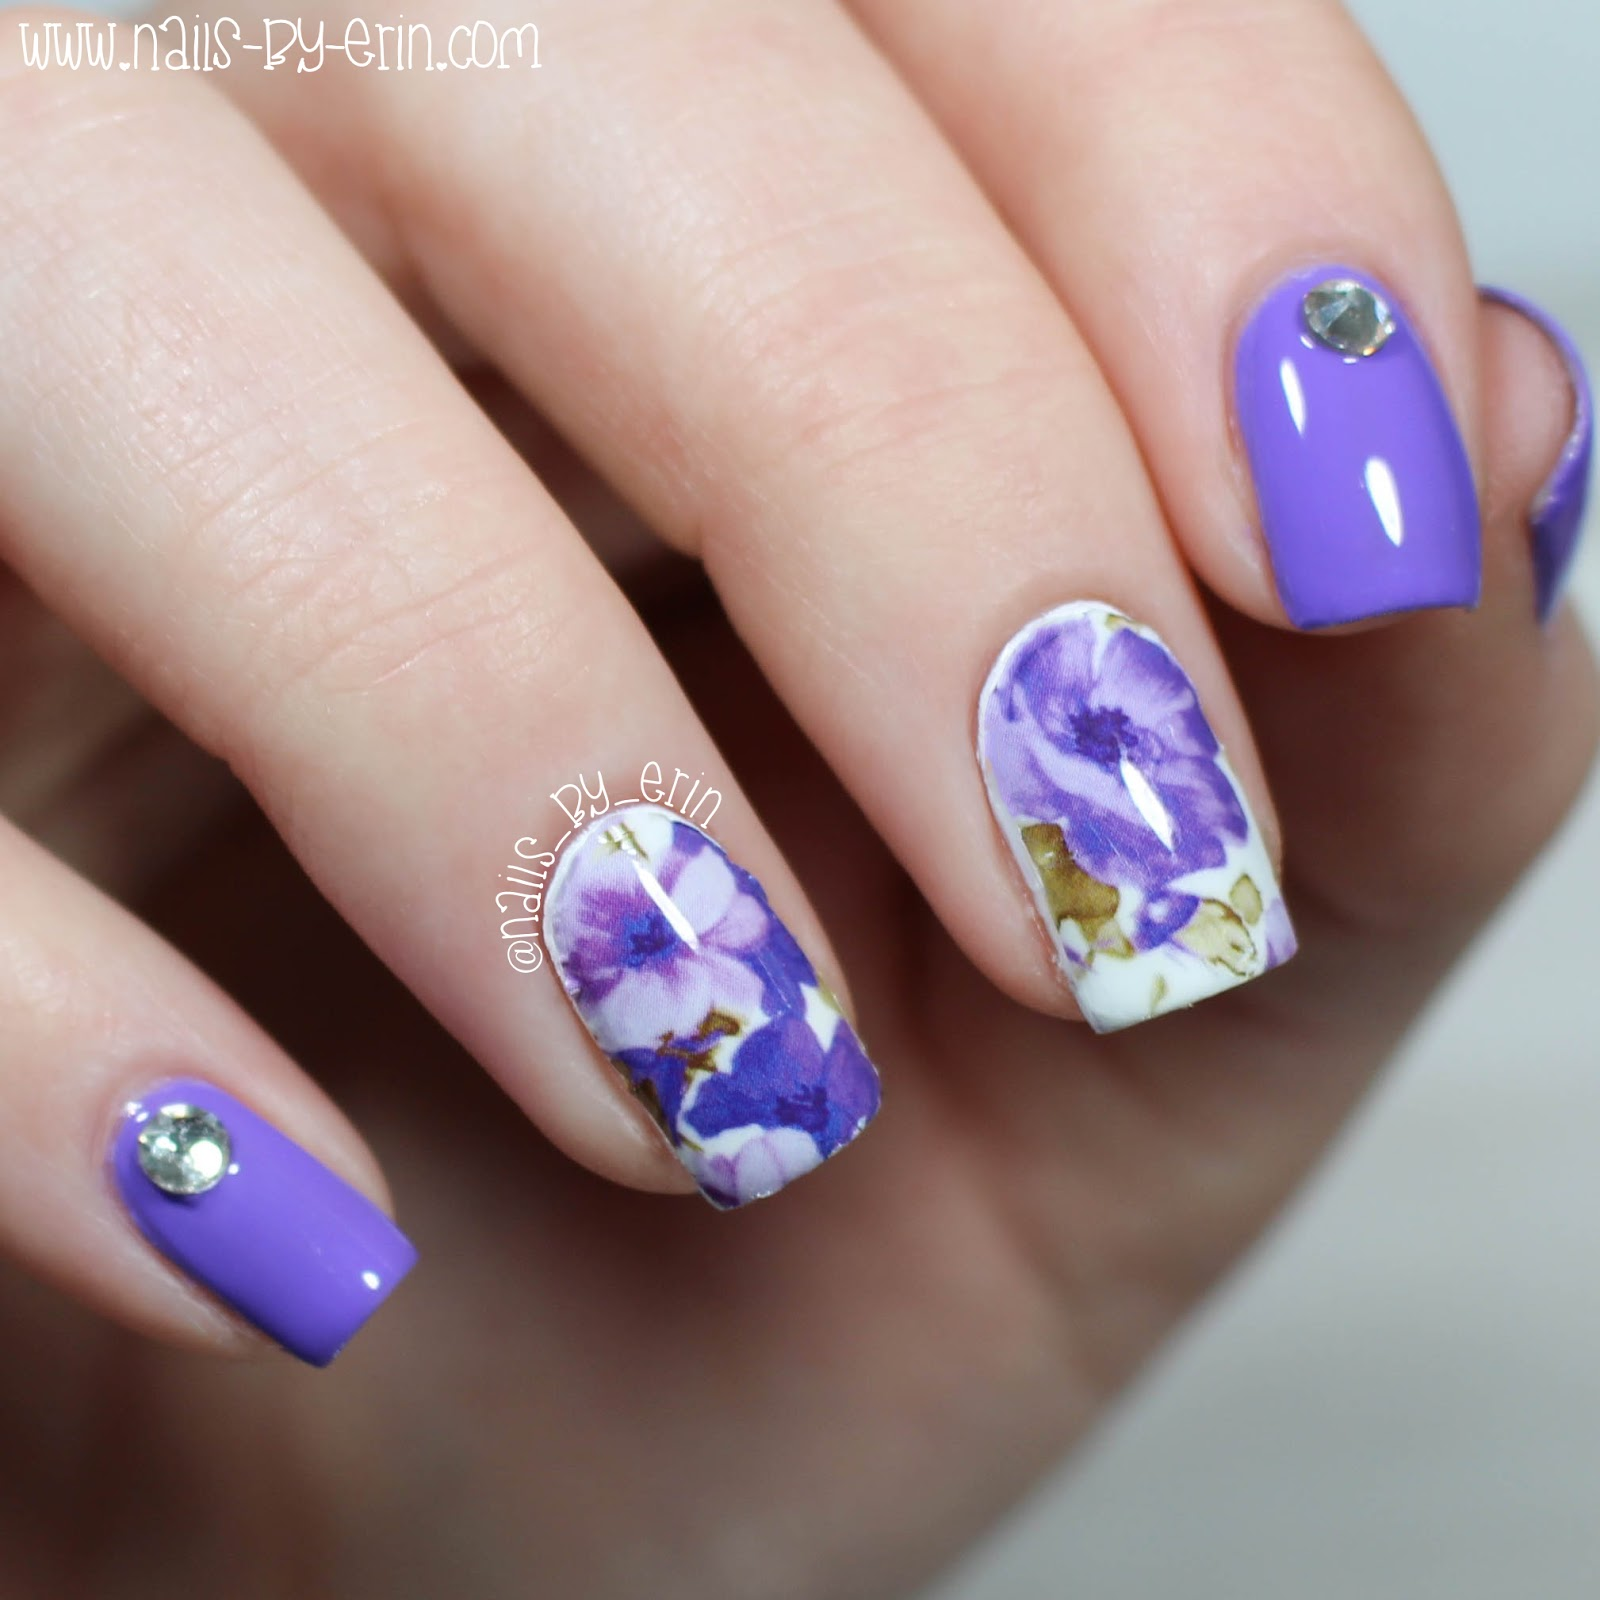 NailsByErin: Purple Floral Water Decal Nails | Born Pretty Store Review